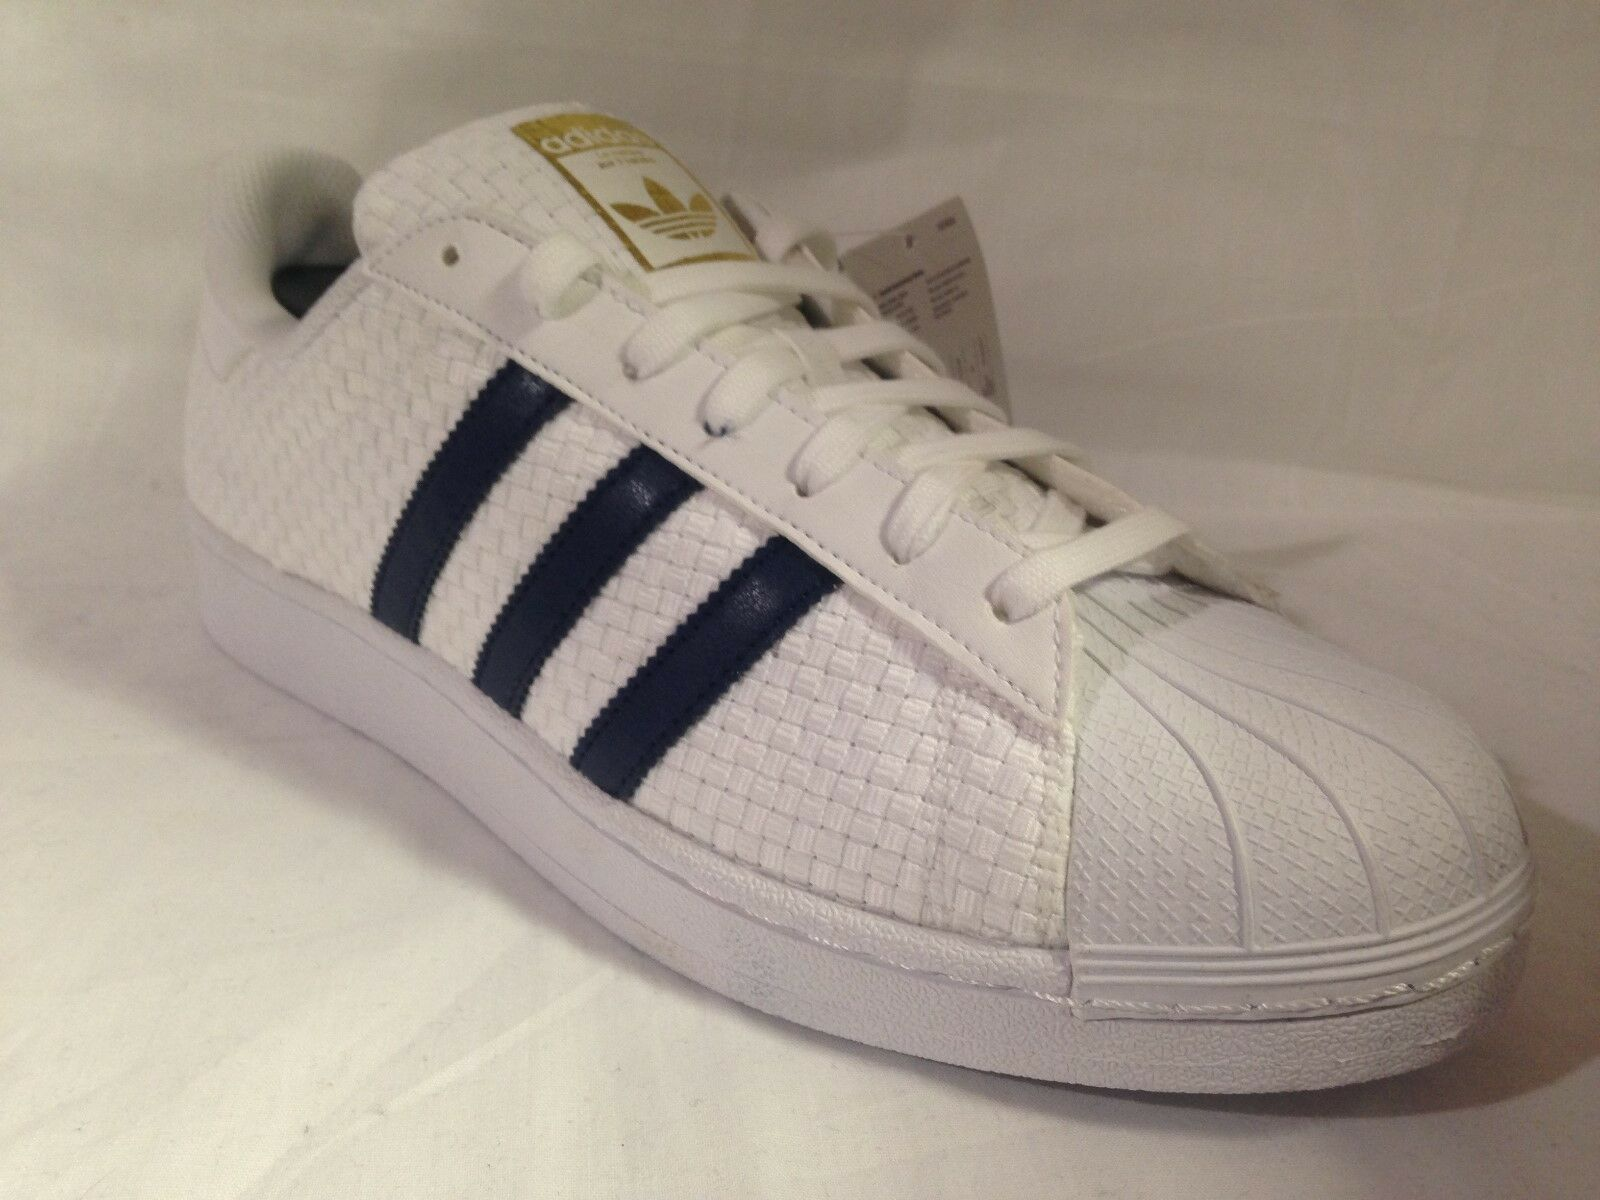 Uomo Adidas Superstar Weave 6.5_8_9.5_10_11.5 WEISS/Navy/Gold BA8493 Größes: UK 6.5_8_9.5_10_11.5 Weave 174243